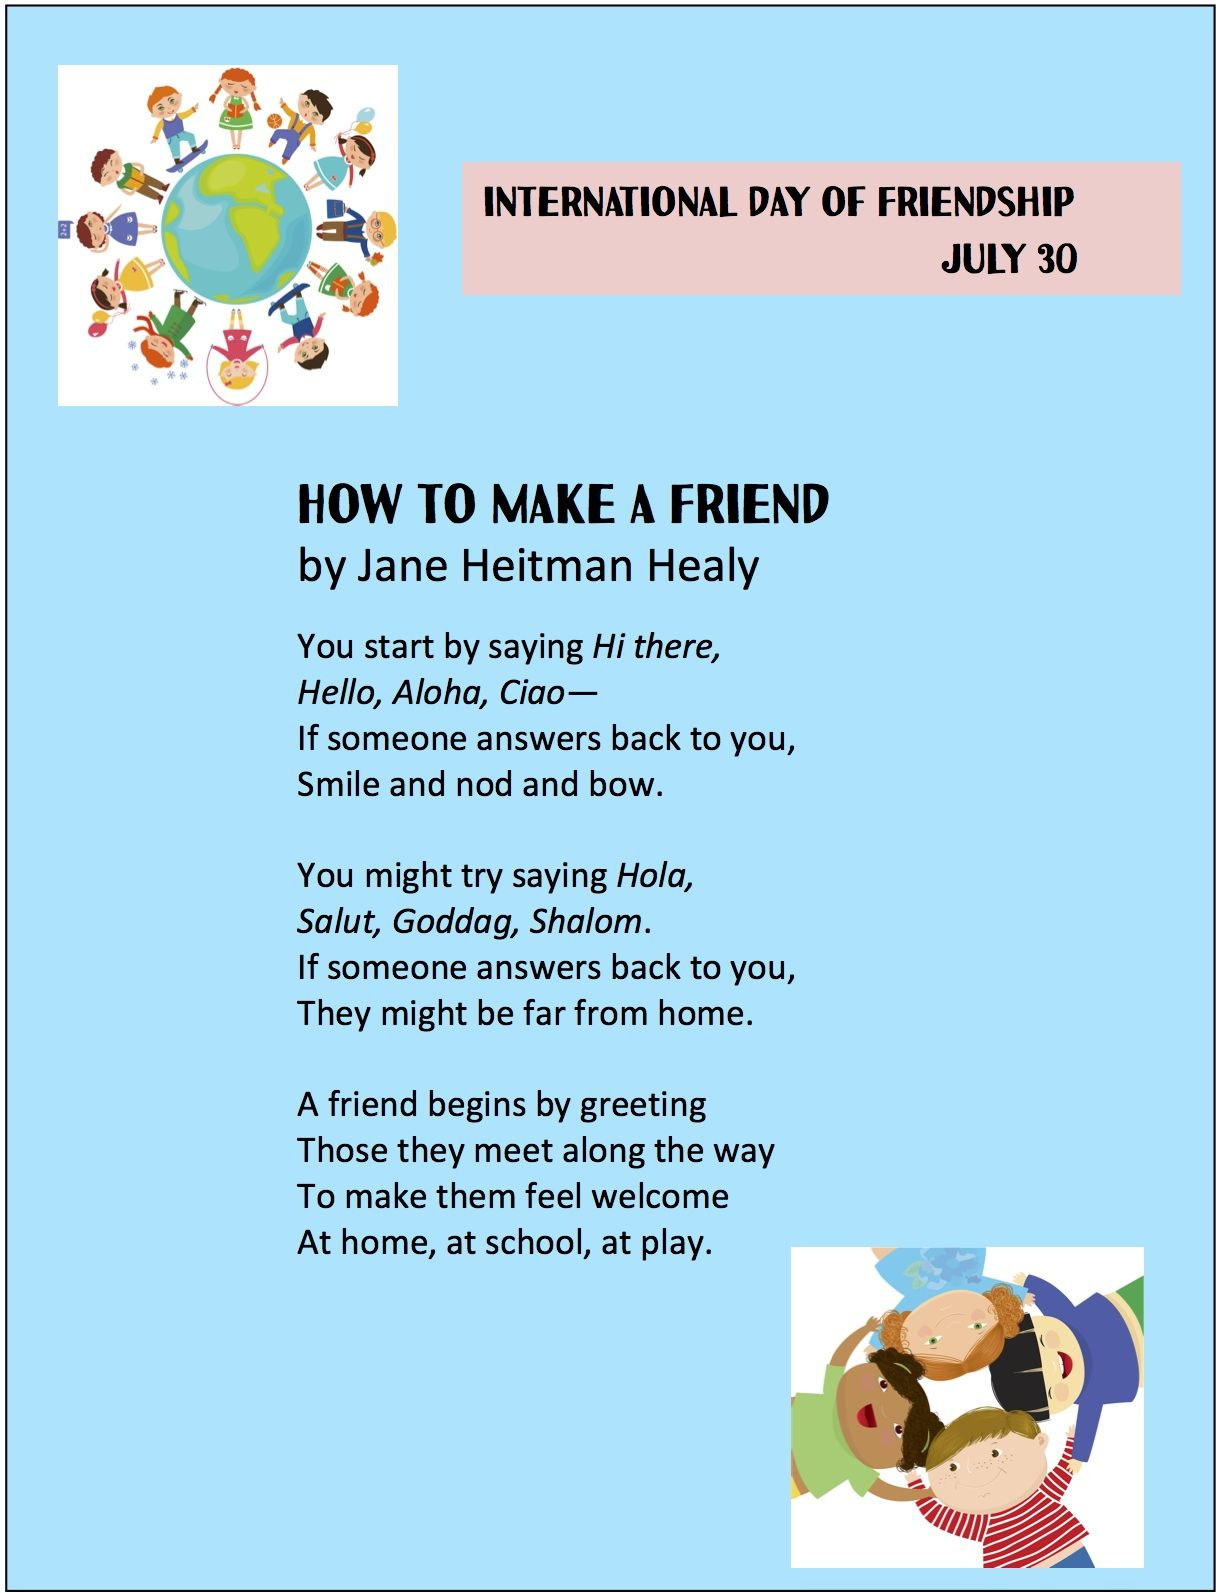 How To Make A Friend By Jane Heitman Healy From The